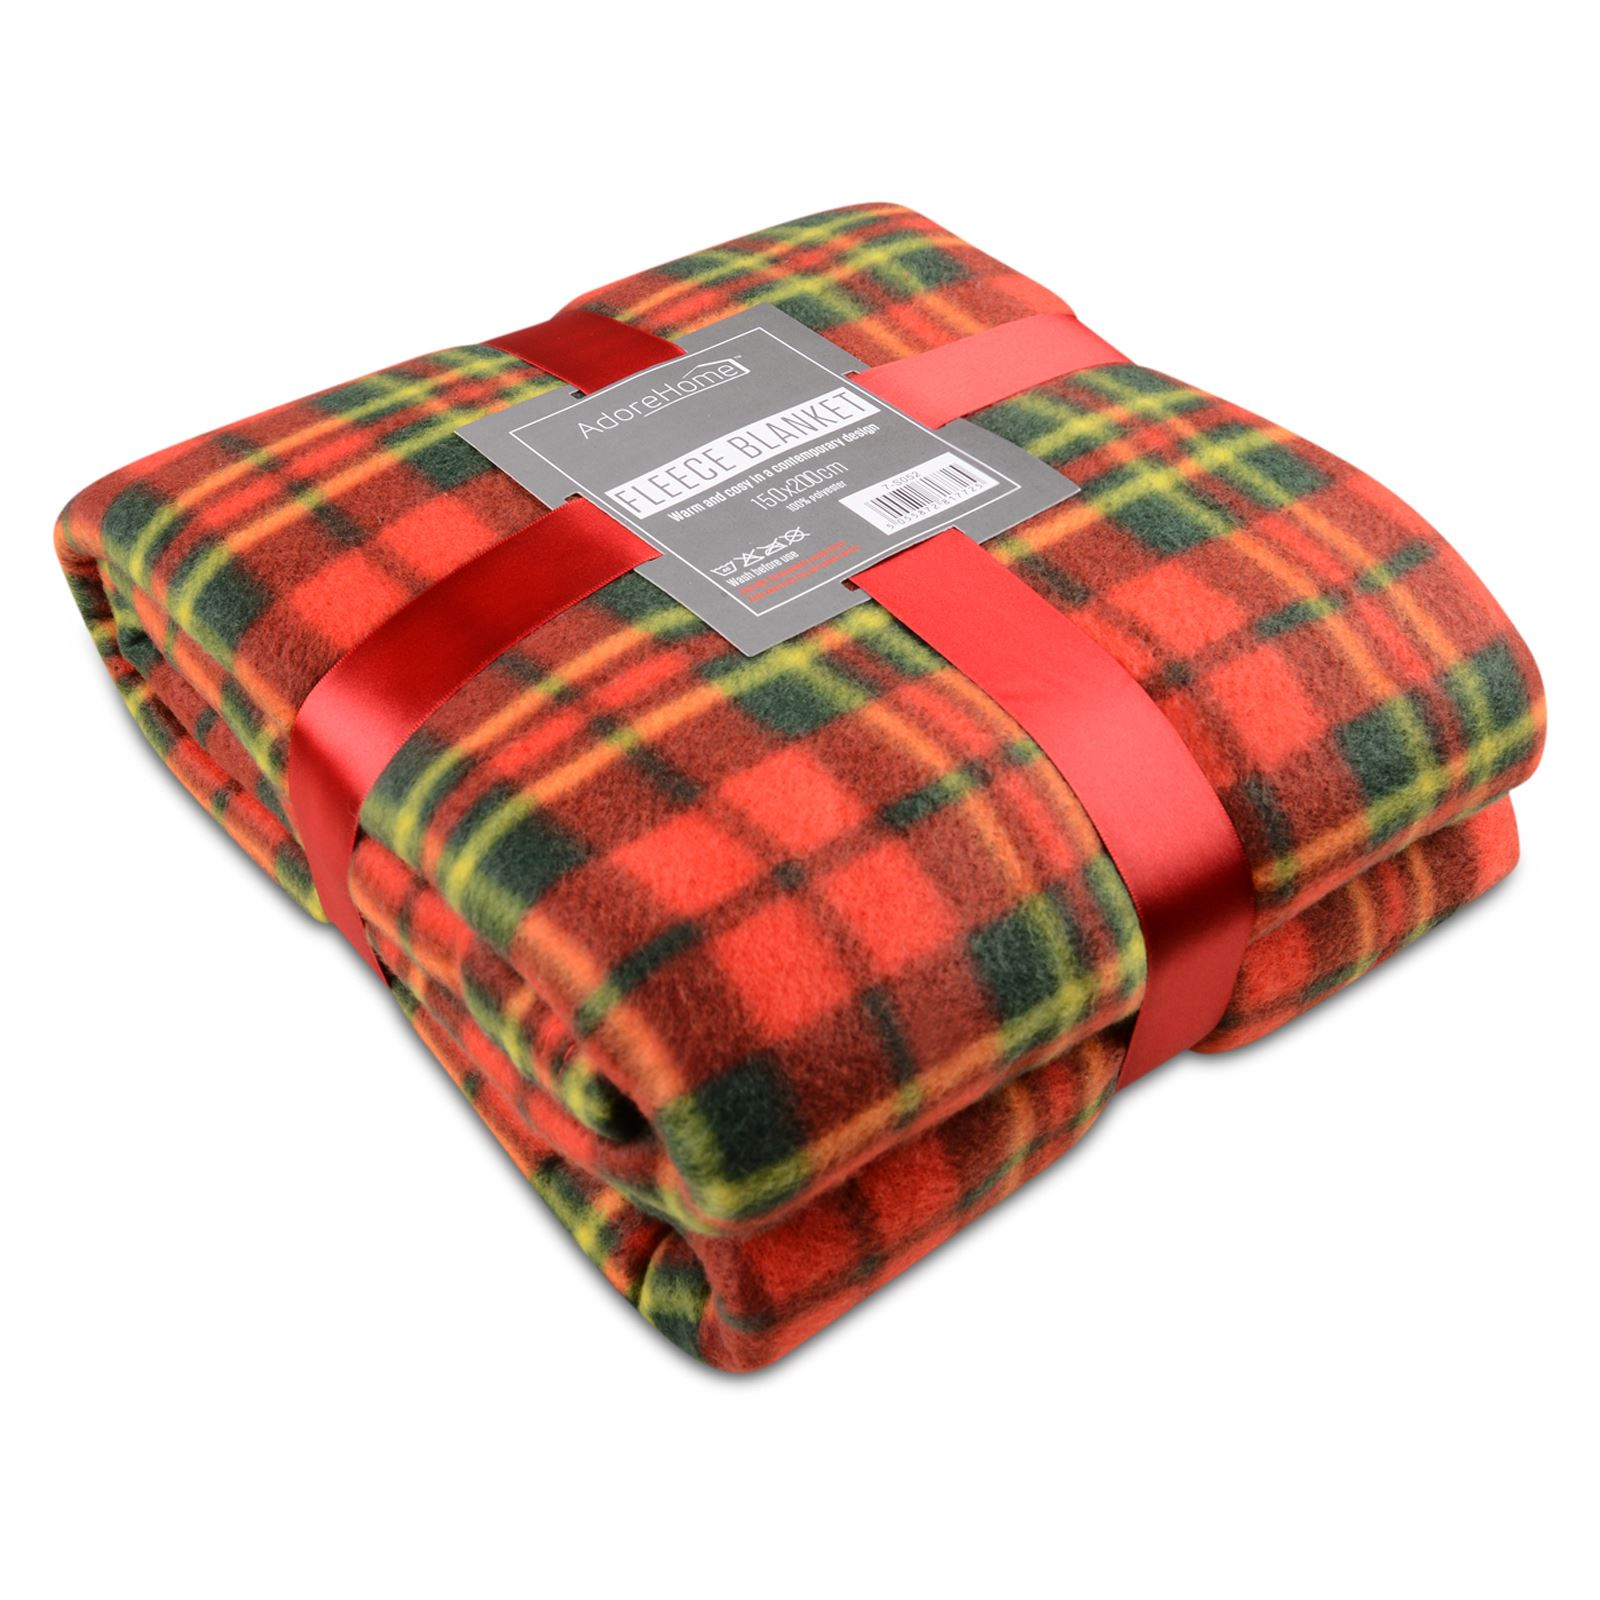 Softest plush blankets including Velvetloft, Serasoft, Microfleece, Primalush, Extra-Fluffy and Fuzzy Bunny from the originators of the best plush and fleece fabrics to the American bedding market. We guarantee our products meet our time honored New England standards for quality.